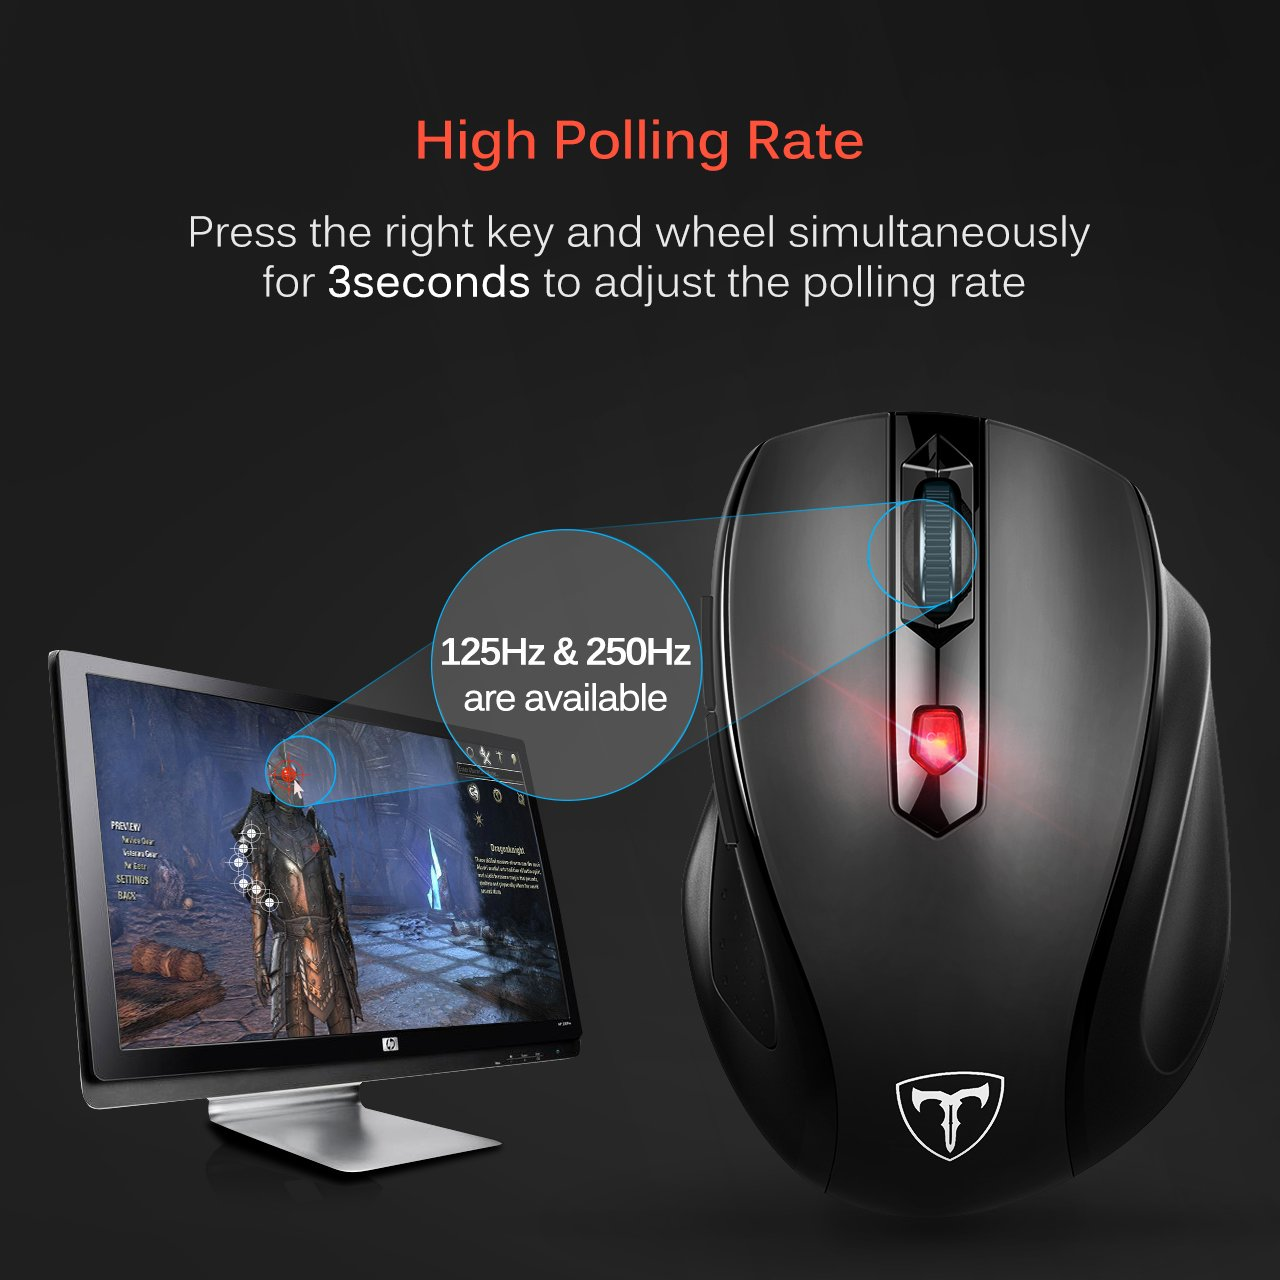 Victsing Mm057 24g Wireless Portable Mobile Mouse Optical Mice With Usb Computer Receiver 5 Adjustable Dpi Levels 6 Buttons For Notebook Pc Laptop